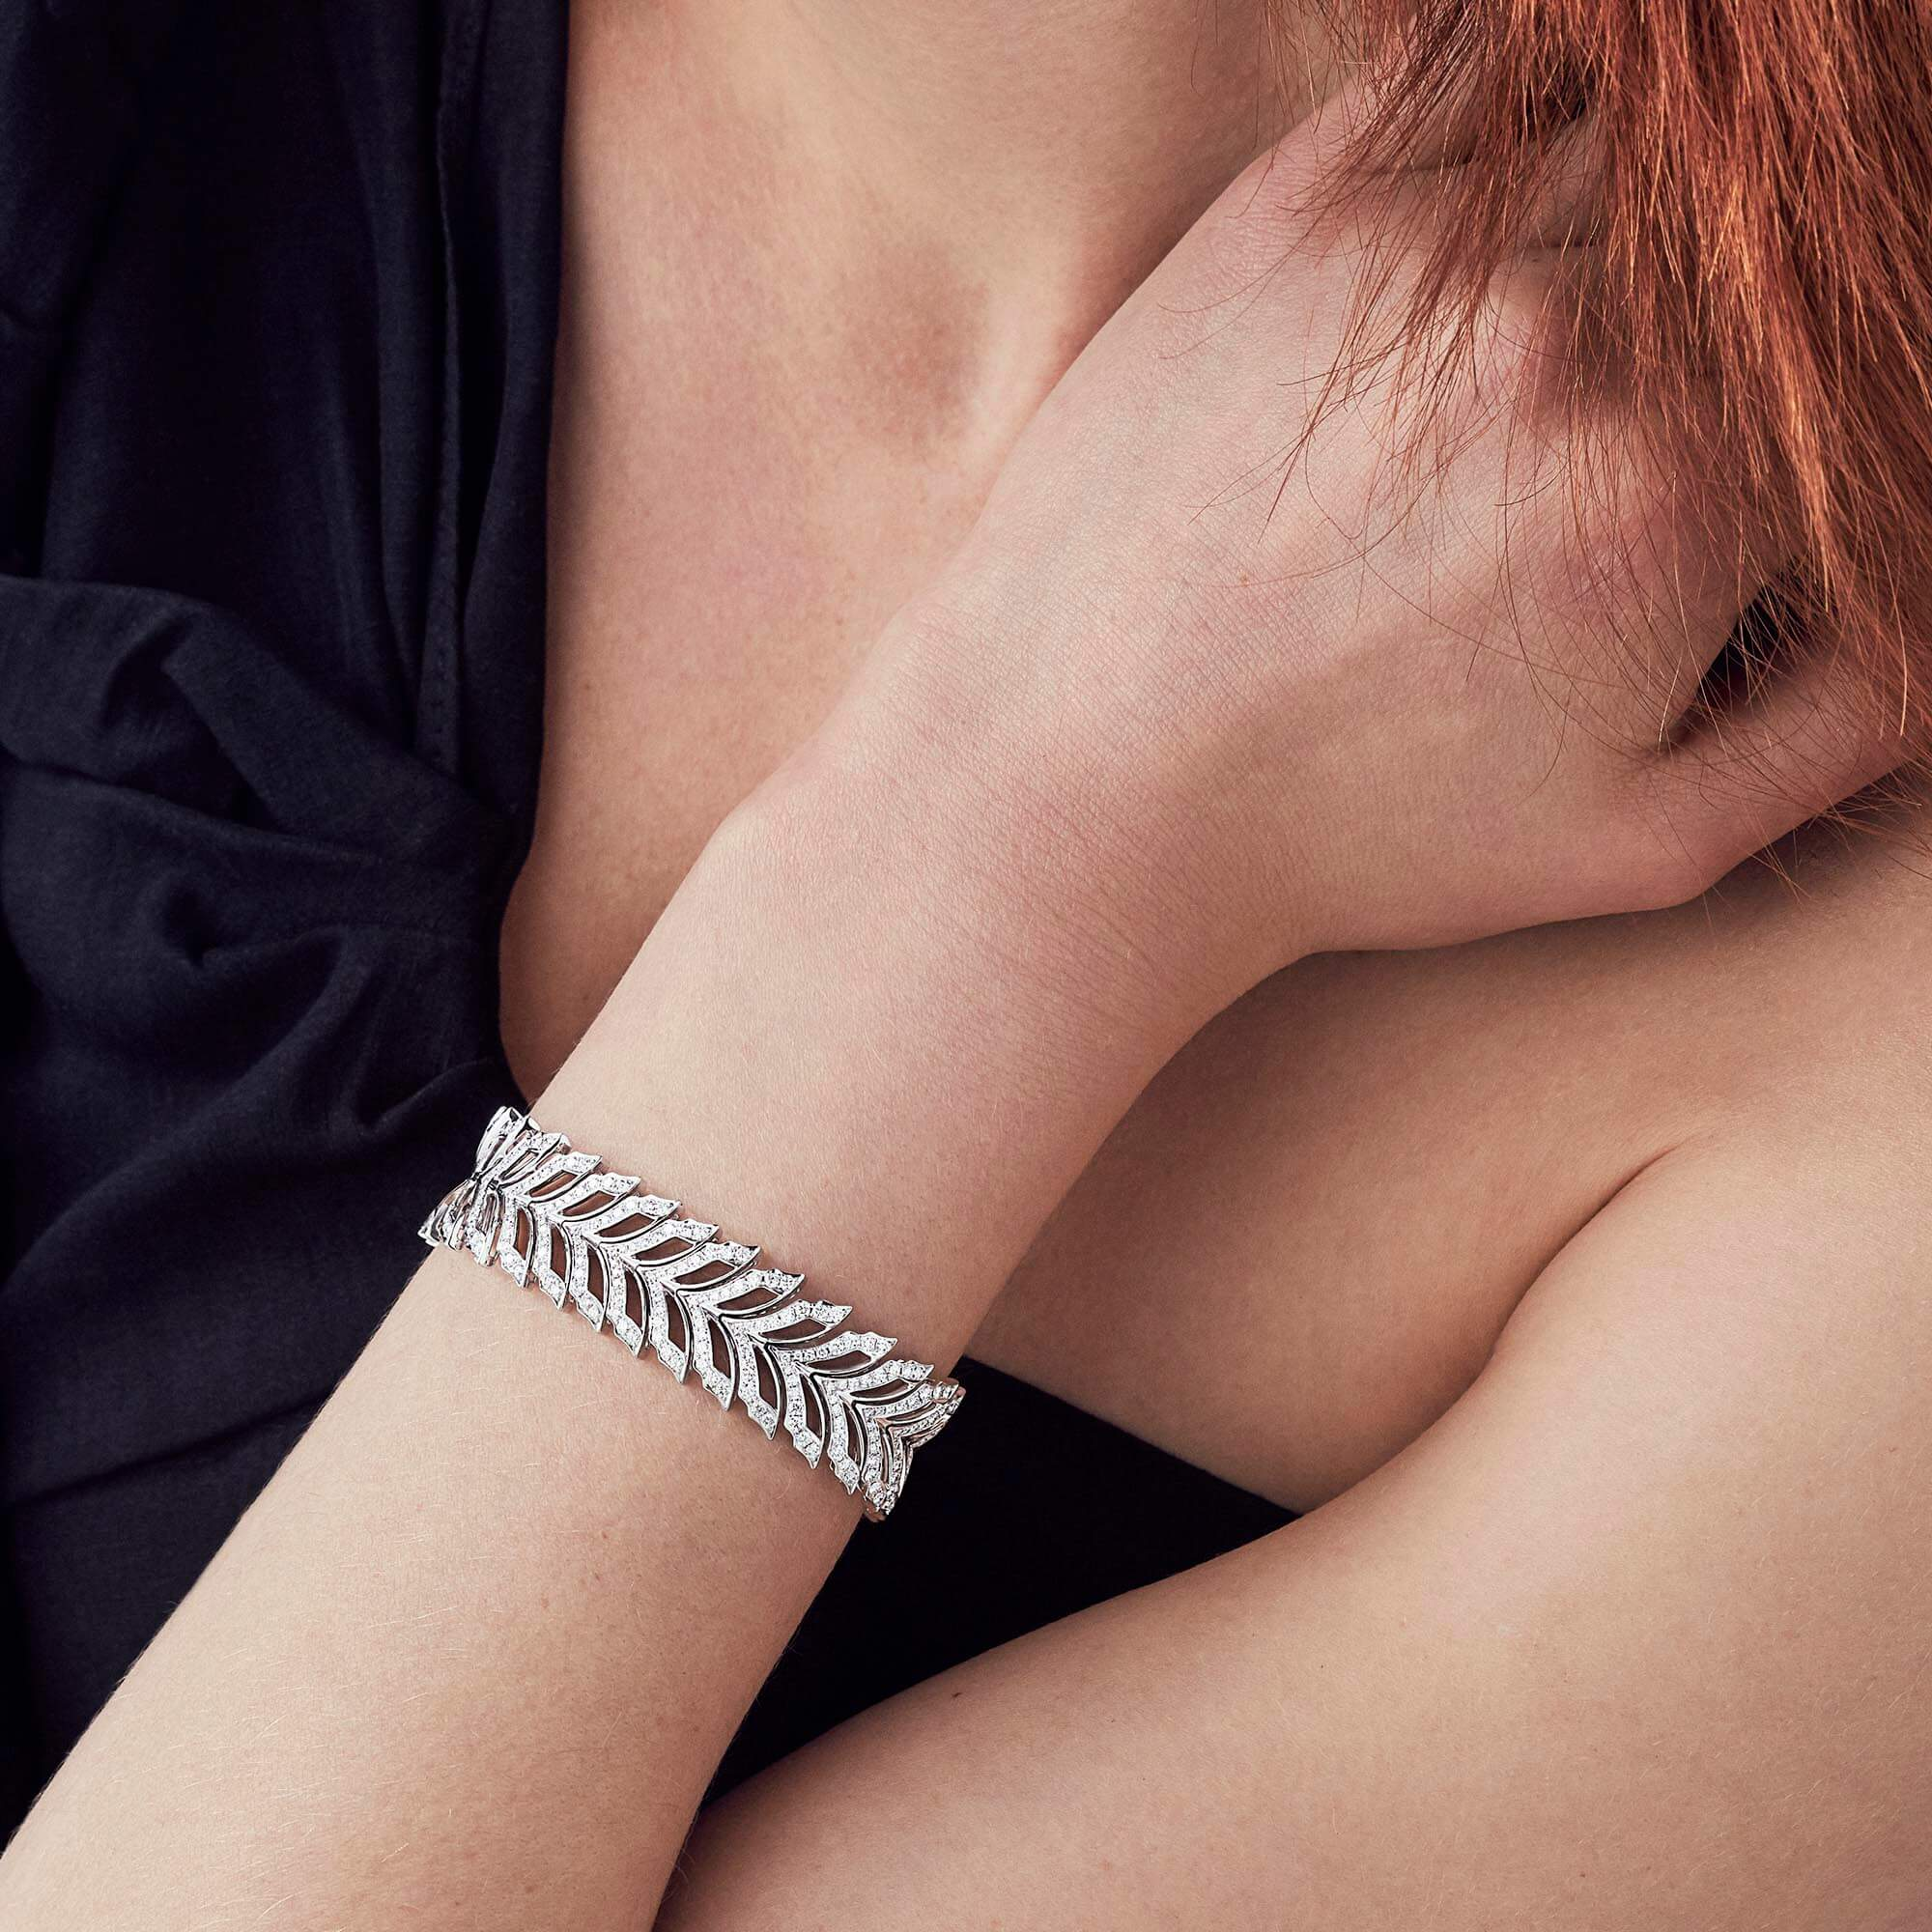 White Gold Pavé Bracelet With White Diamonds | Magnipheasant